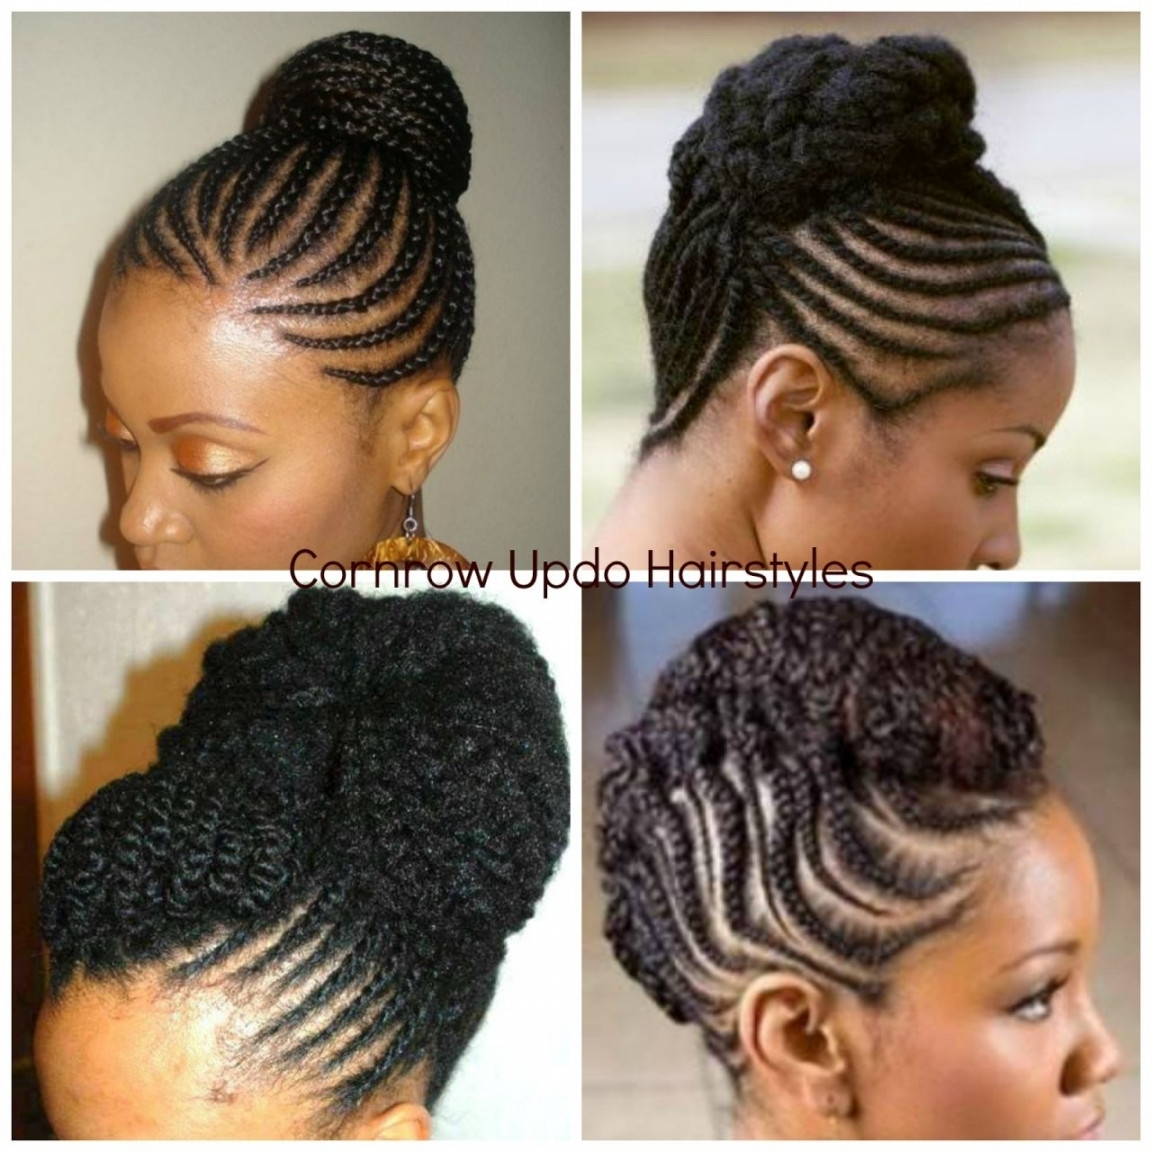 Braiding Styles Natural Hair Cornrow Hairstyles Updo Black Hair Intended For Elegant Cornrow Updo Hairstyles (View 5 of 15)